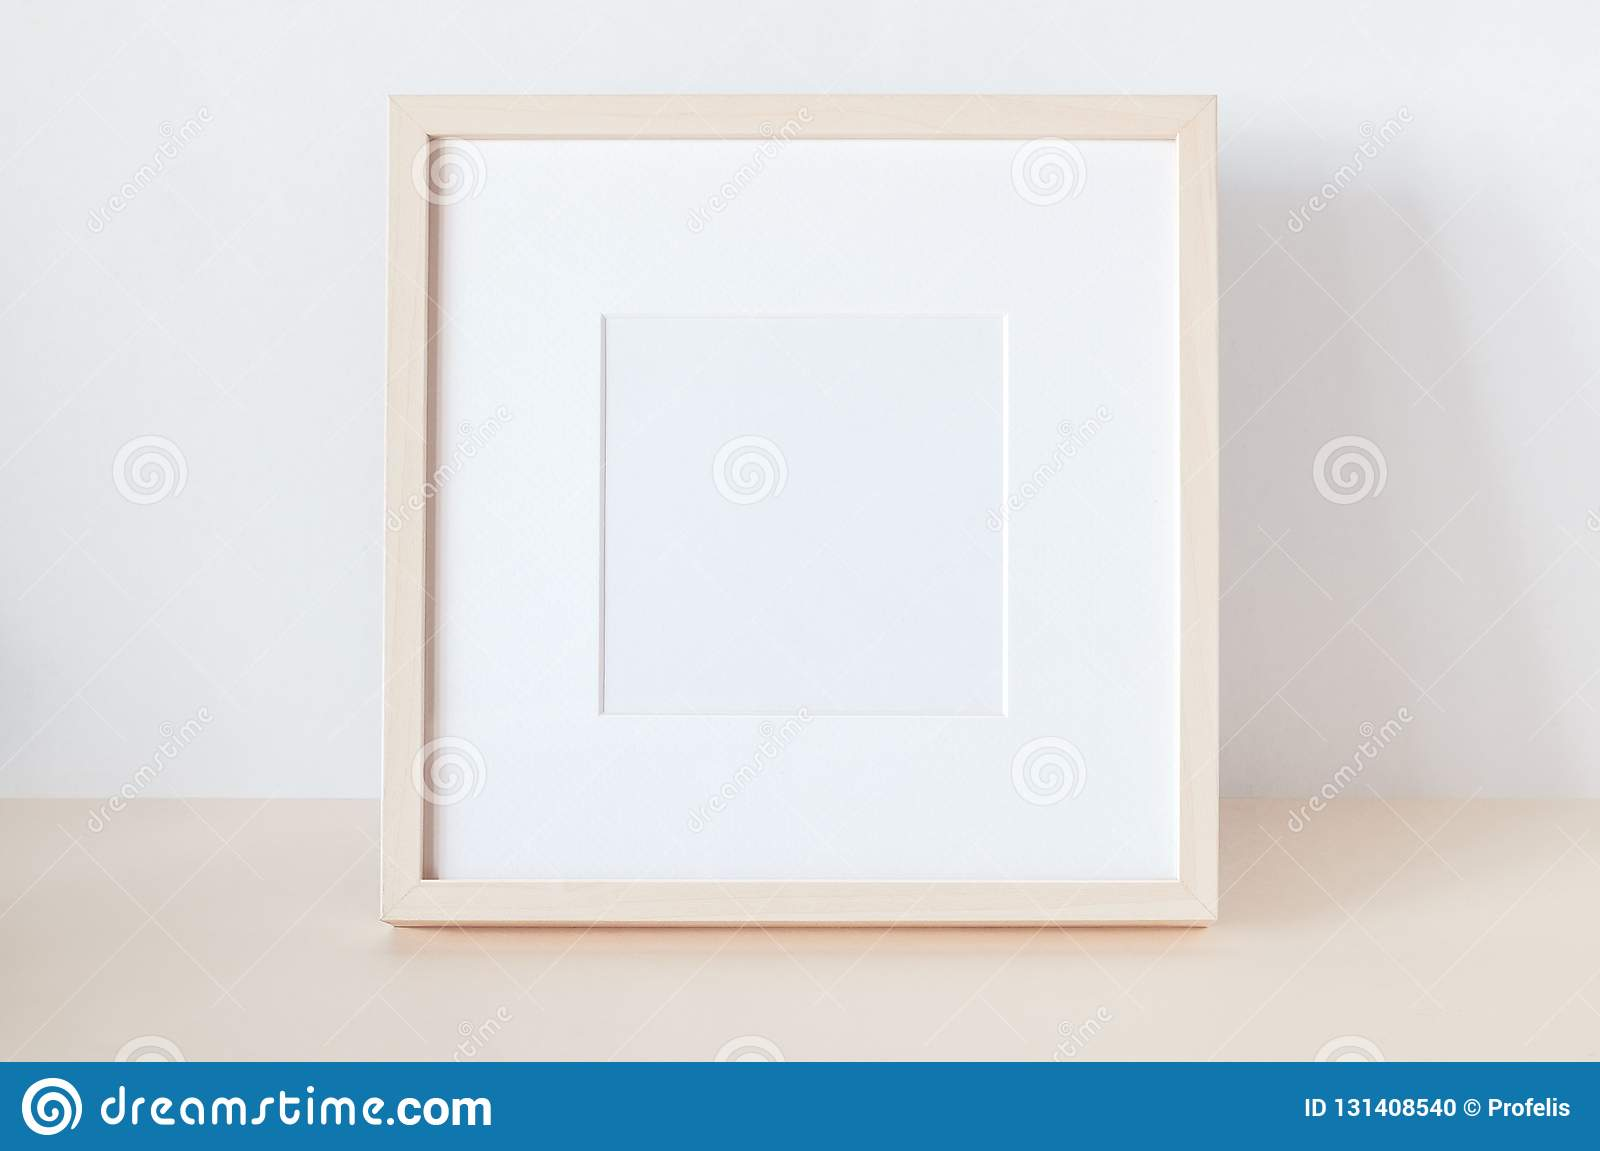 Wooden Square Frame With Poster Mockup Stock Photo Image Of Mock